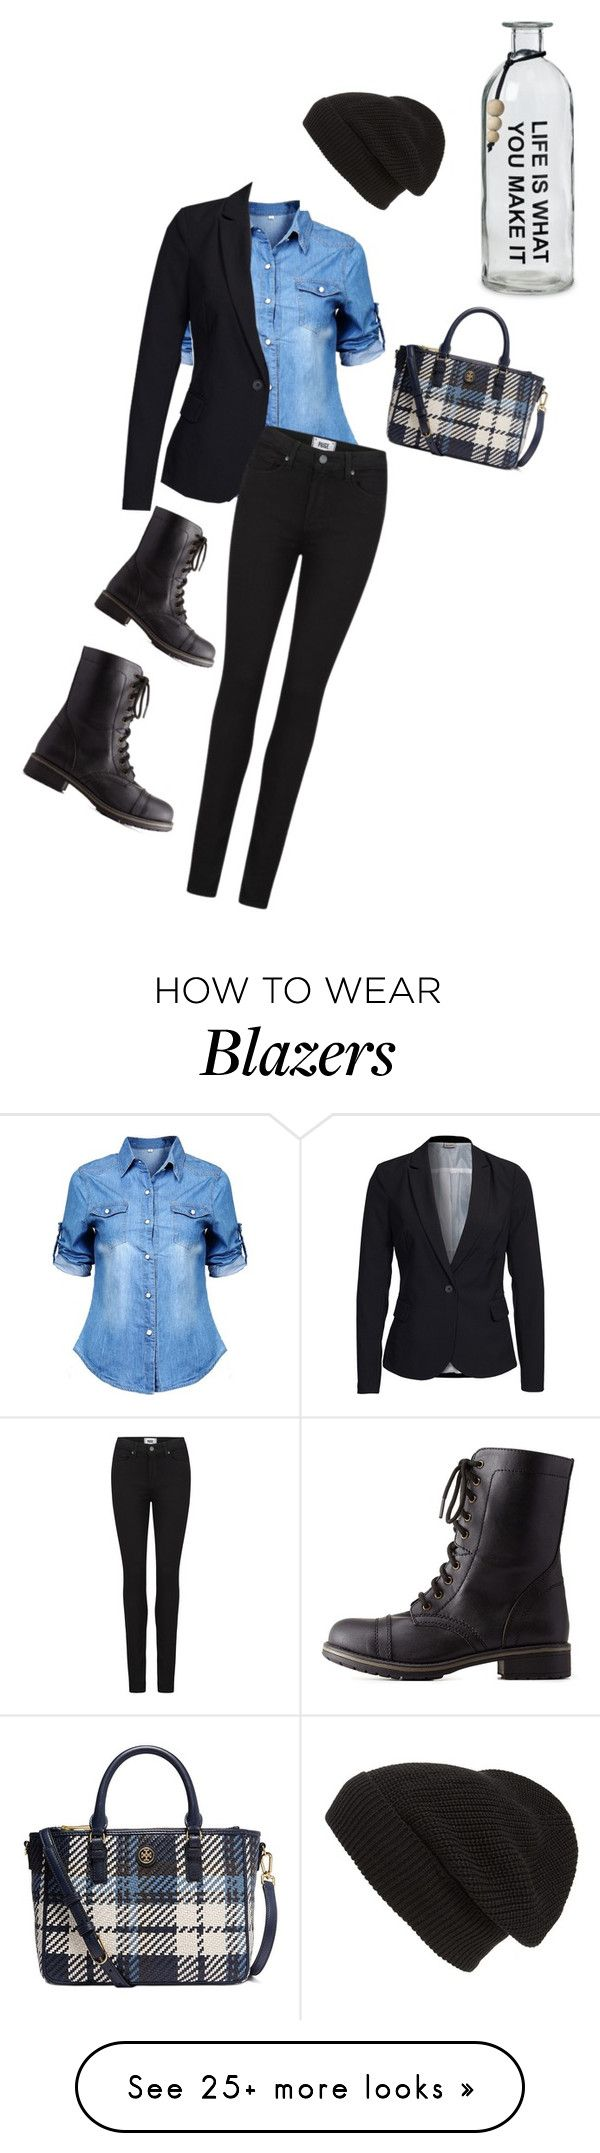 """""""Untitled #819"""" by sylviabunny on Polyvore featuring Vero Moda, Paige Denim, Phase 3, Charlotte Russe and Tory Burch"""